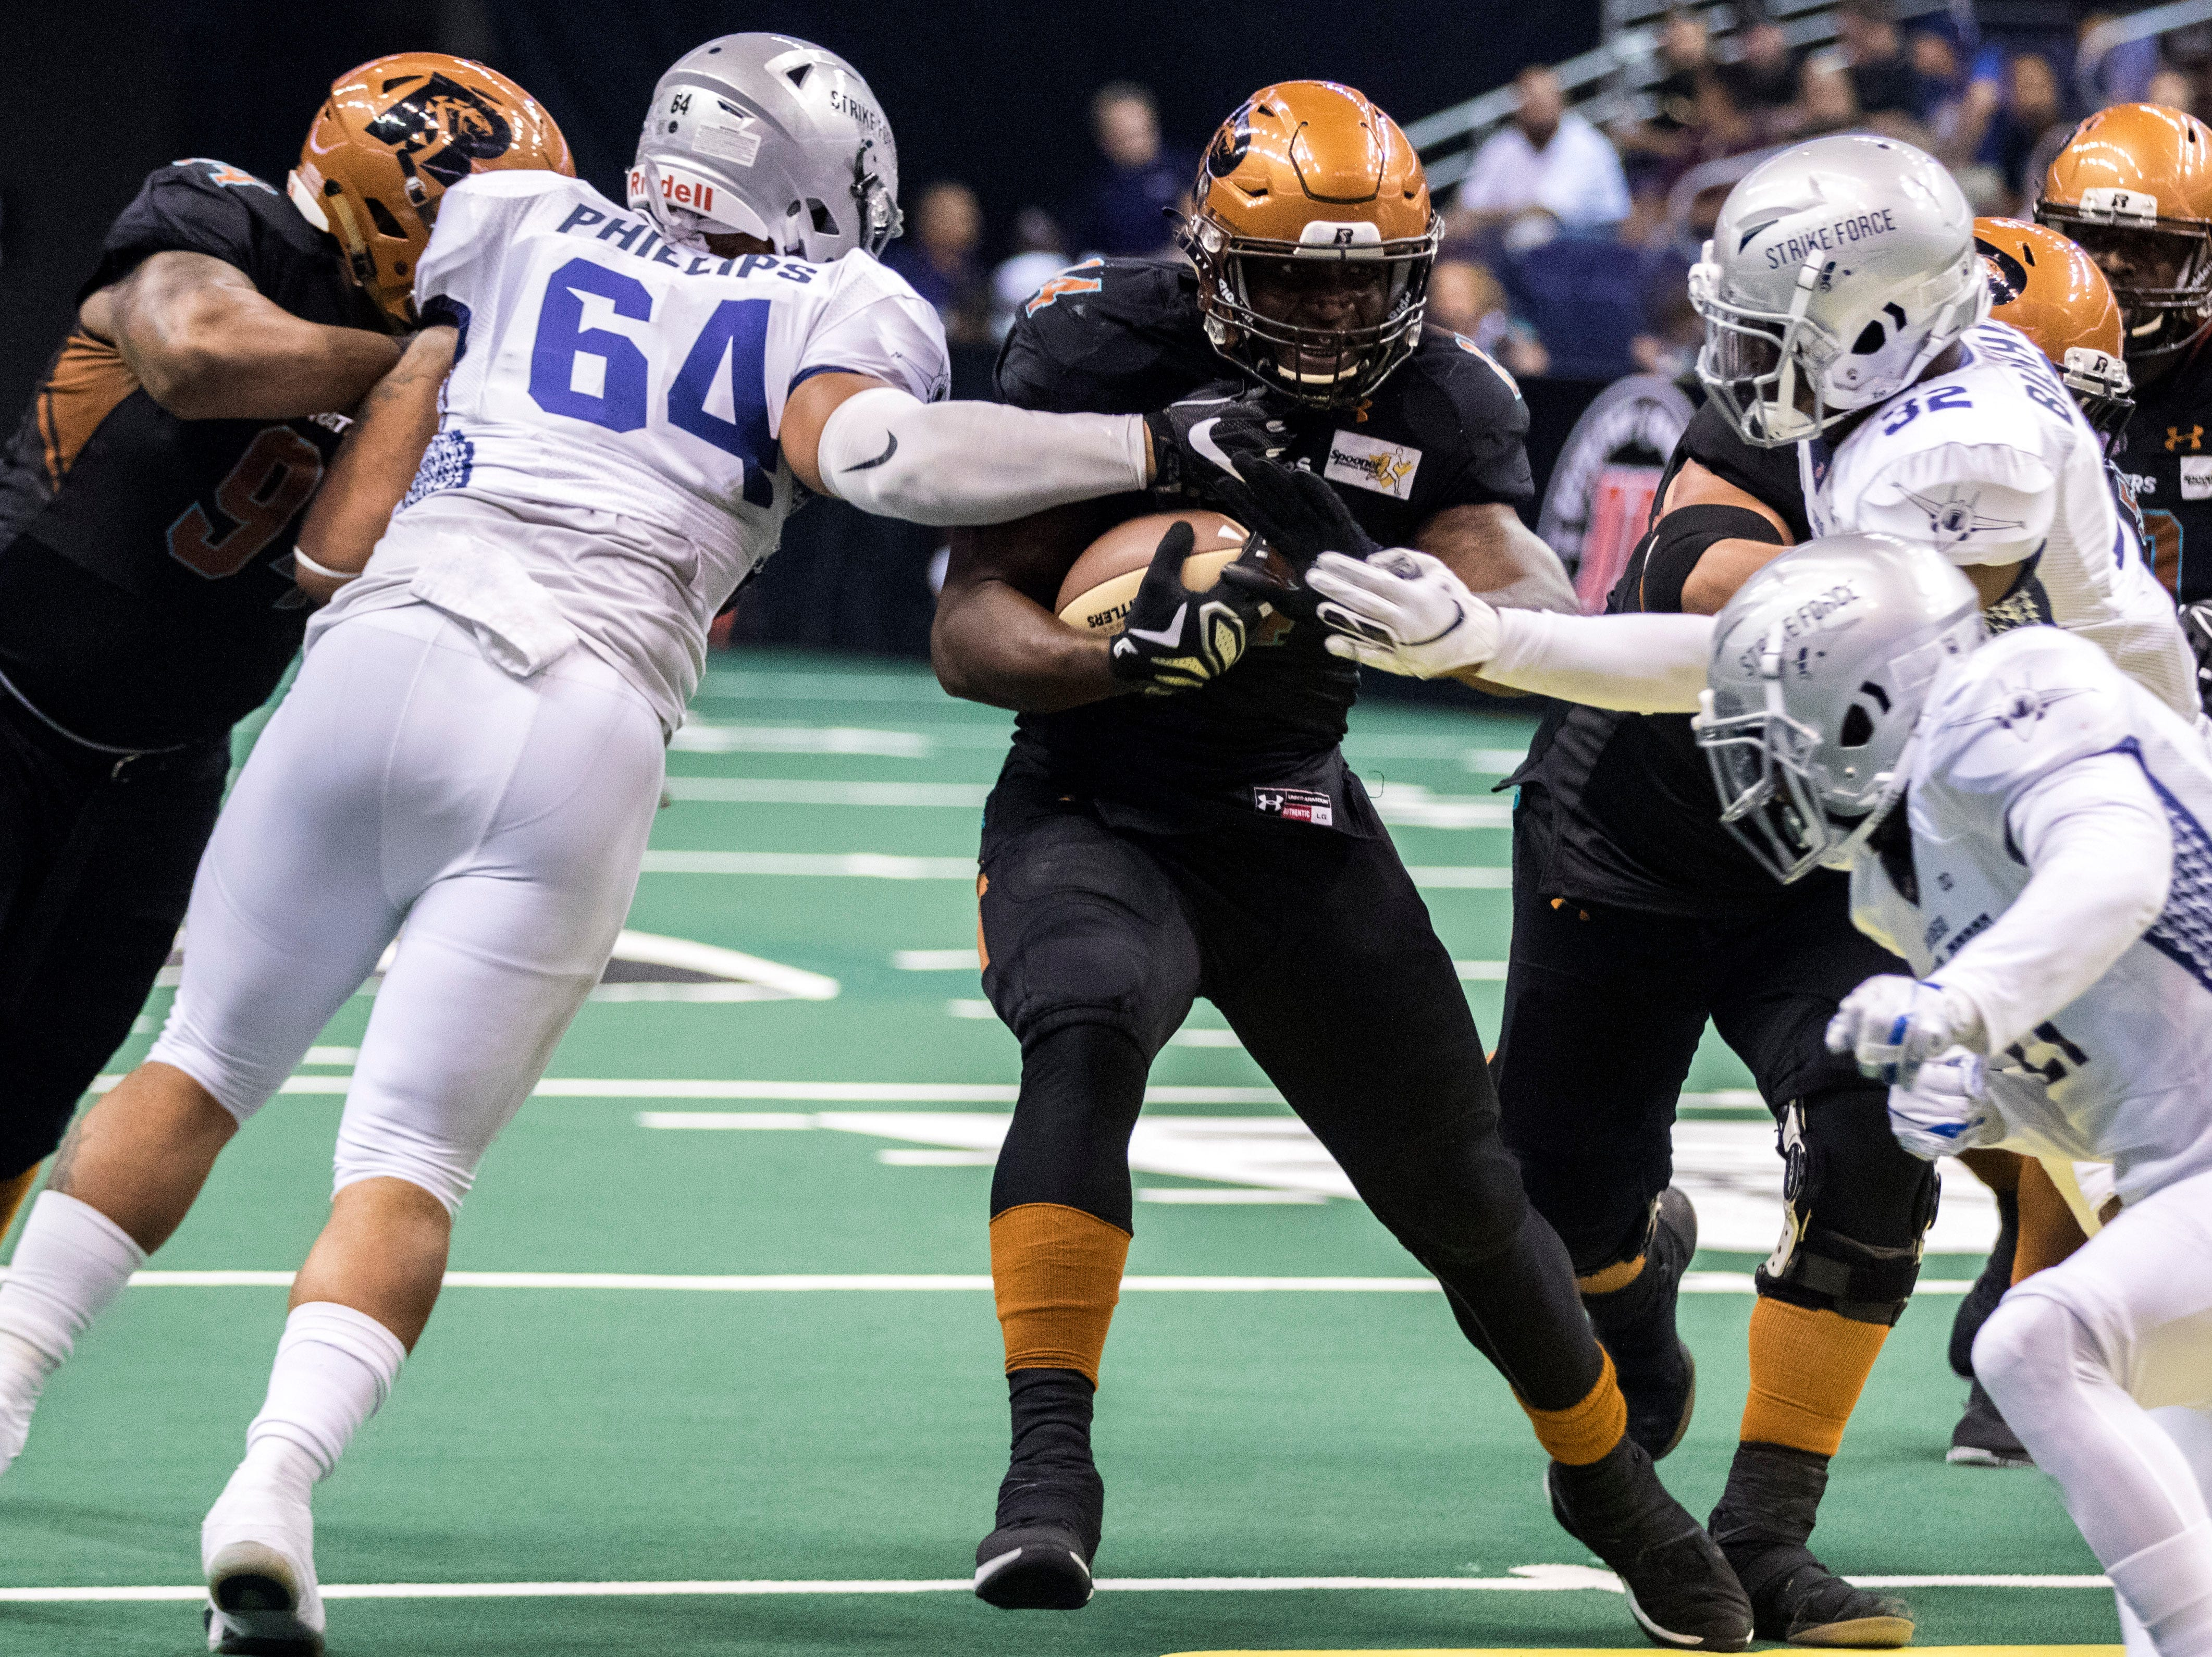 Arizona Rattlers' Darrell Monroe runs between tackles against San Diego Strike Force's defense during the first half of their game at Talking Stick Resort Arena in Phoenix Friday, April. 6, 2019.